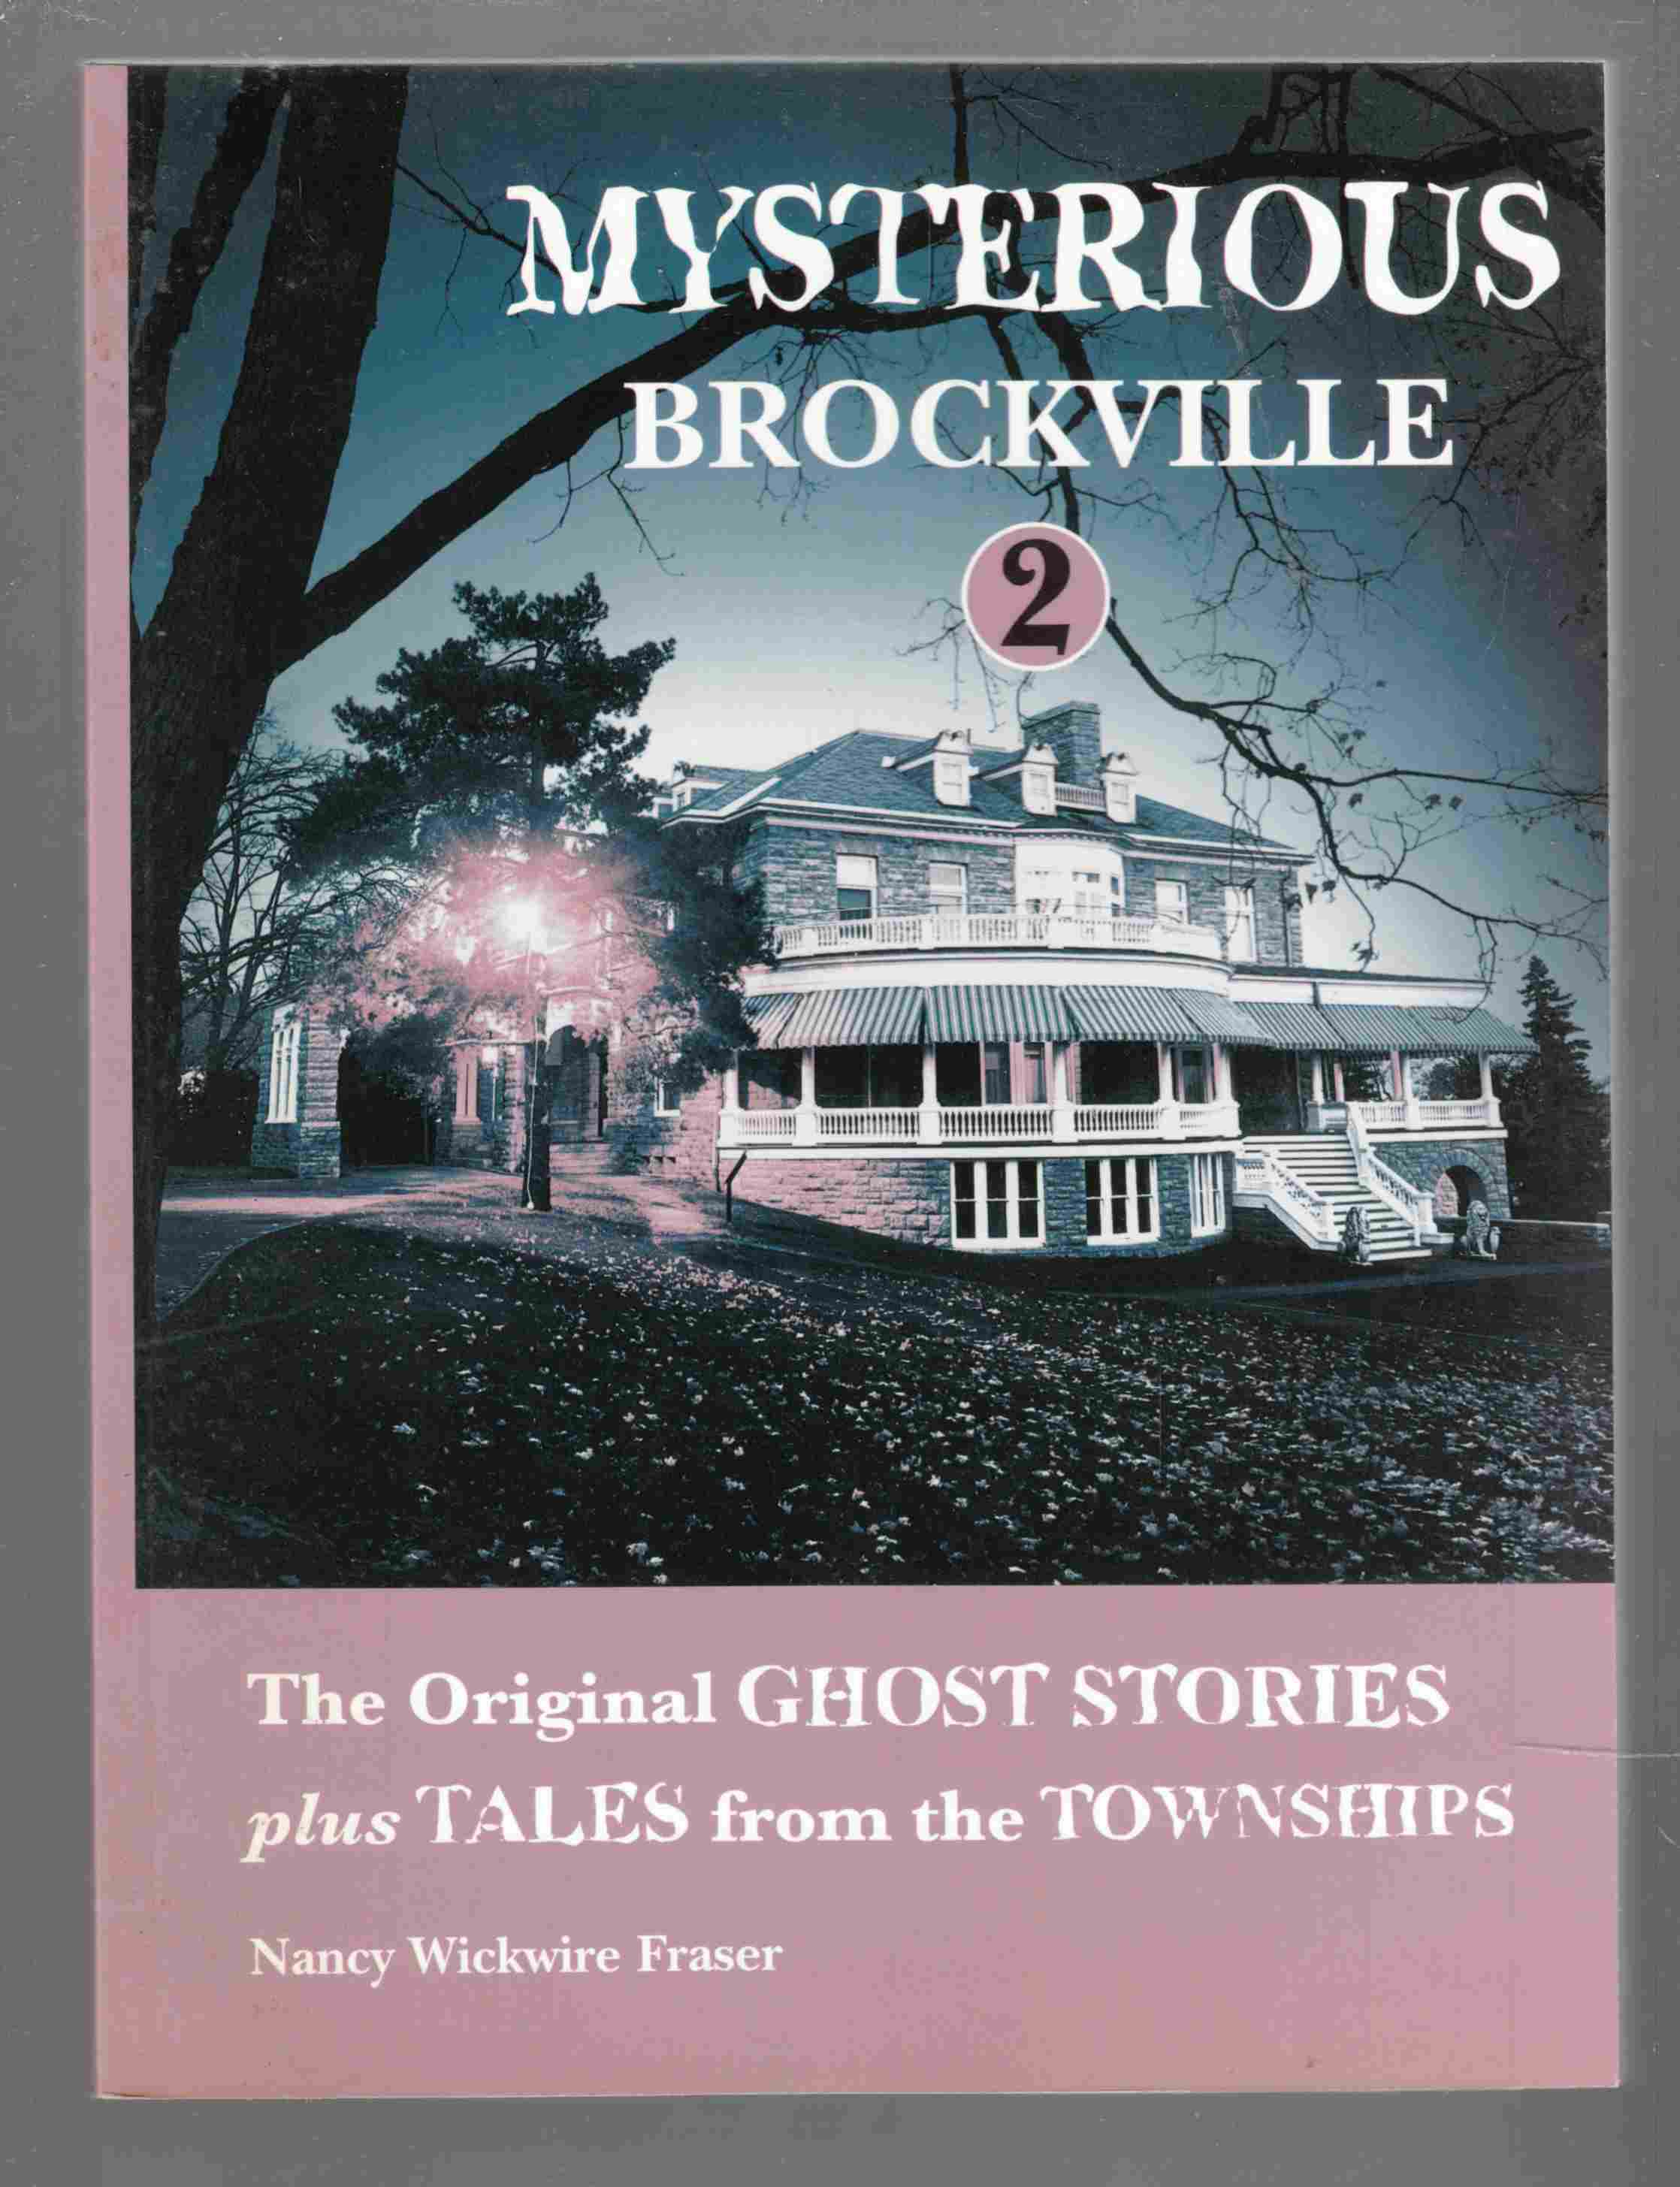 Image for Mysterious Brockville 2 The Original Ghost Stories Plus Tales from the Townships